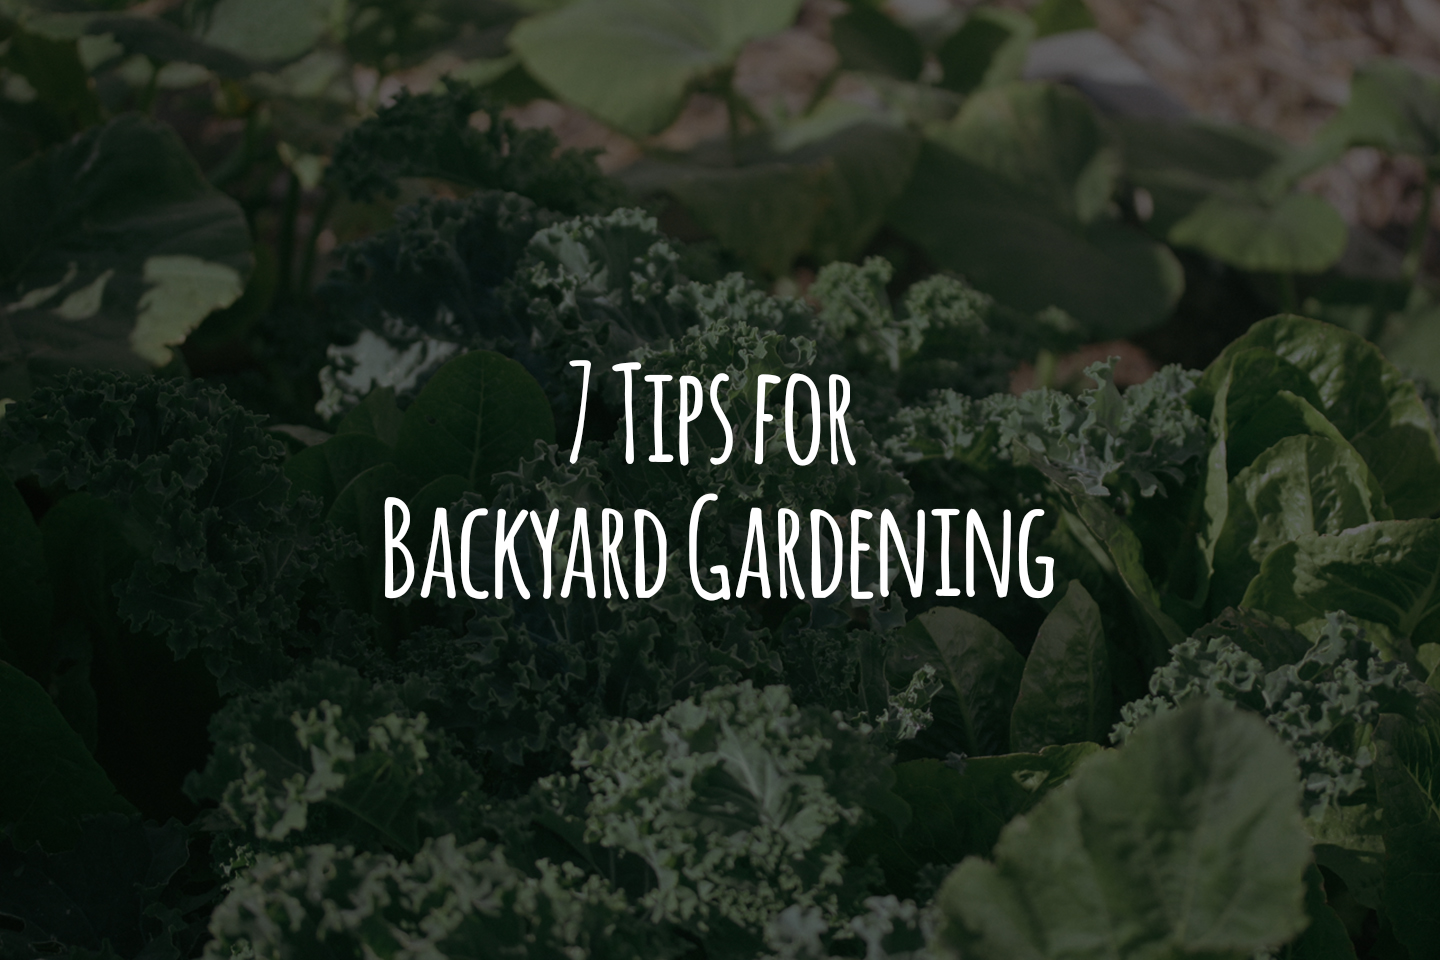 7 Tips for Backyard Gardening